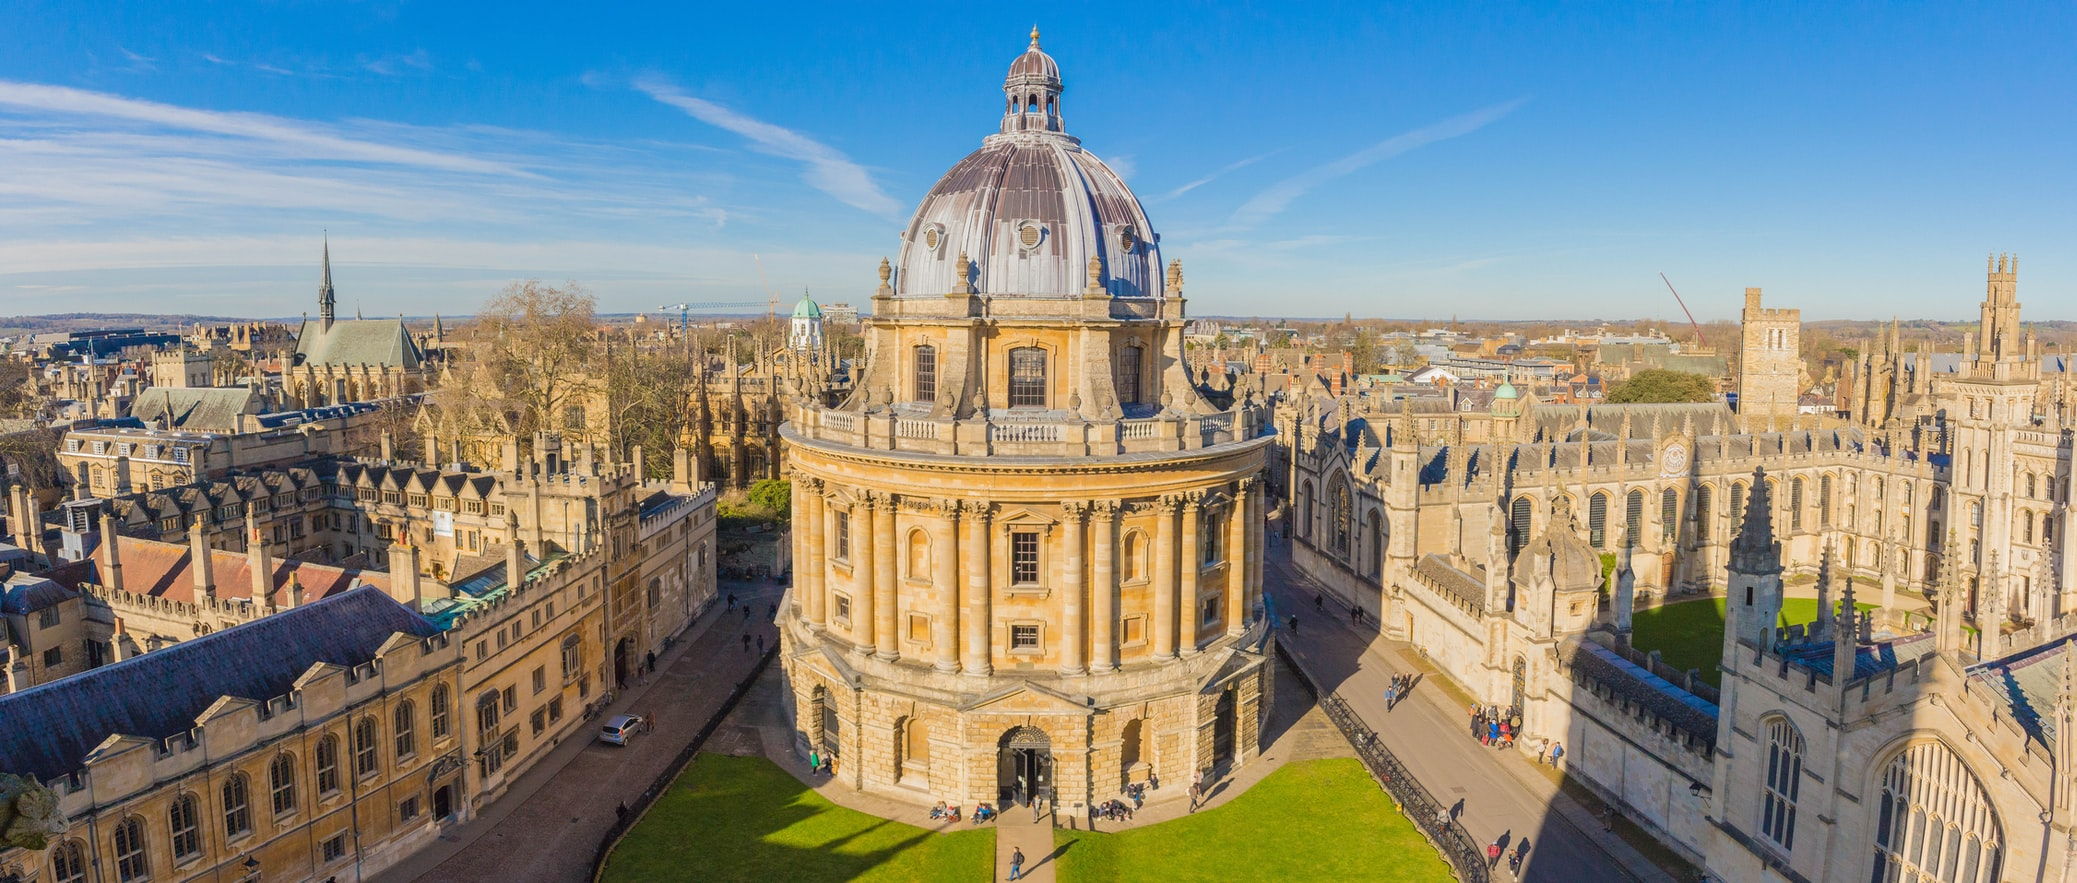 Oxford: the emerging out-of-London hotspot